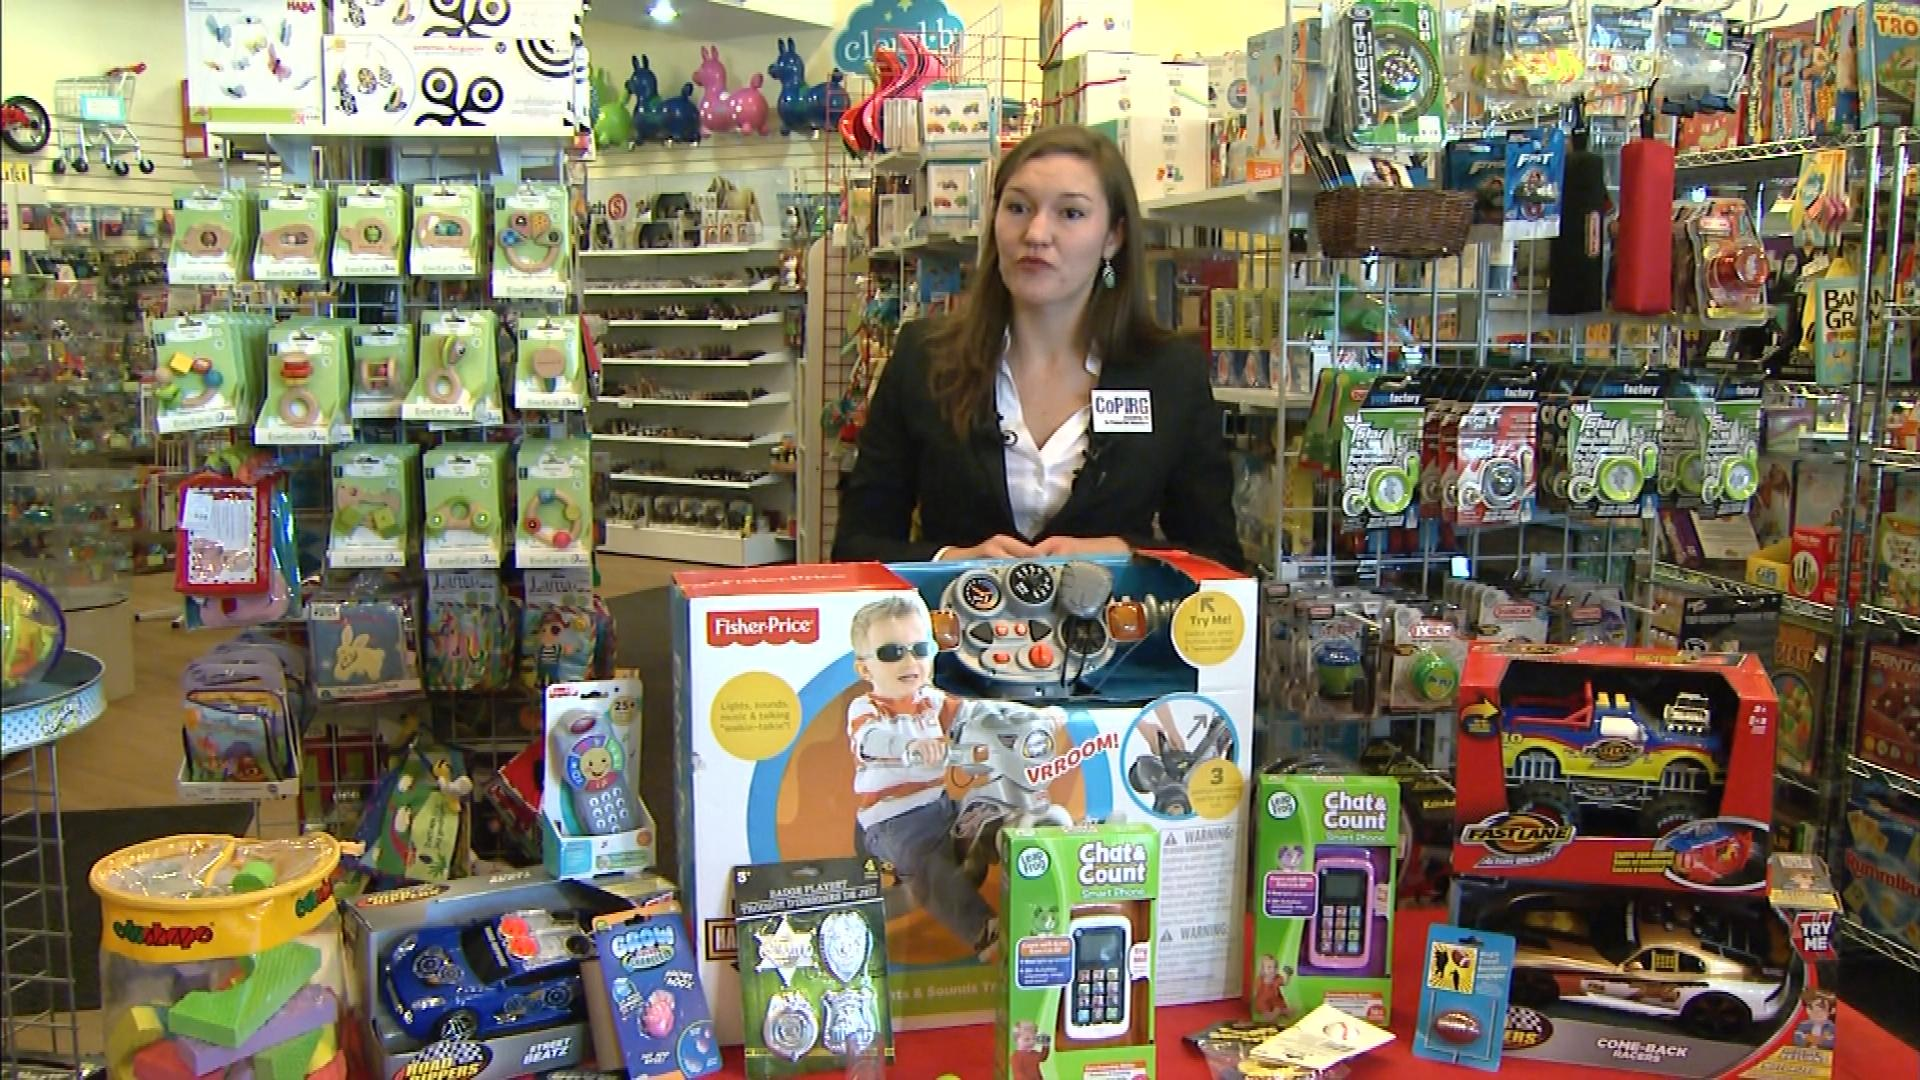 Lisa Ritland with CoPIRG shows off dangerous toys (credit: CBS)